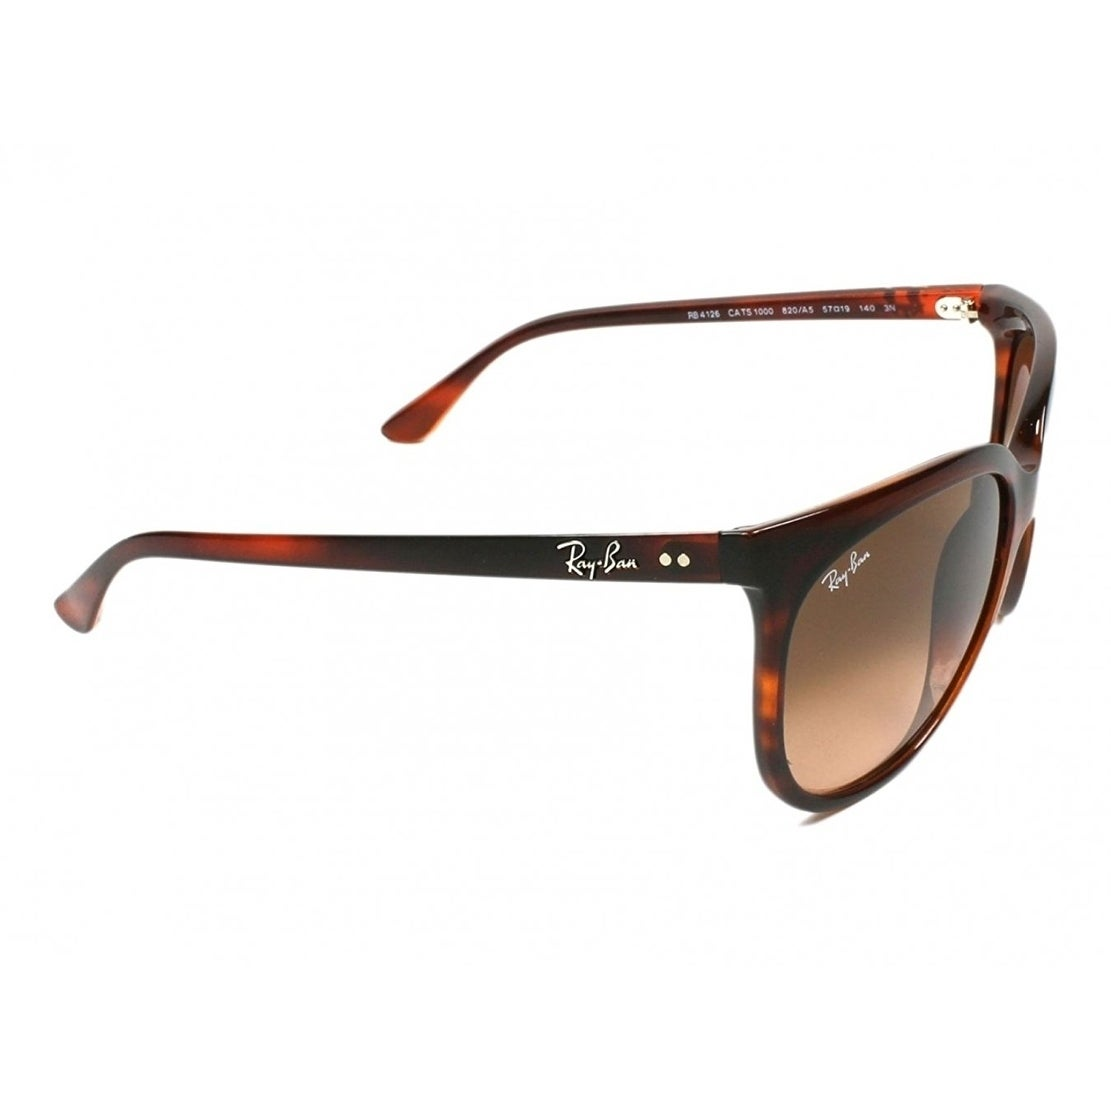 116a1211827 Shop Ray-Ban Women s RB4126 Cats 1000 Tortoise Frame Pink Brown Gradient  57mm Lens Sunglasses - Free Shipping Today - Overstock - 17754307